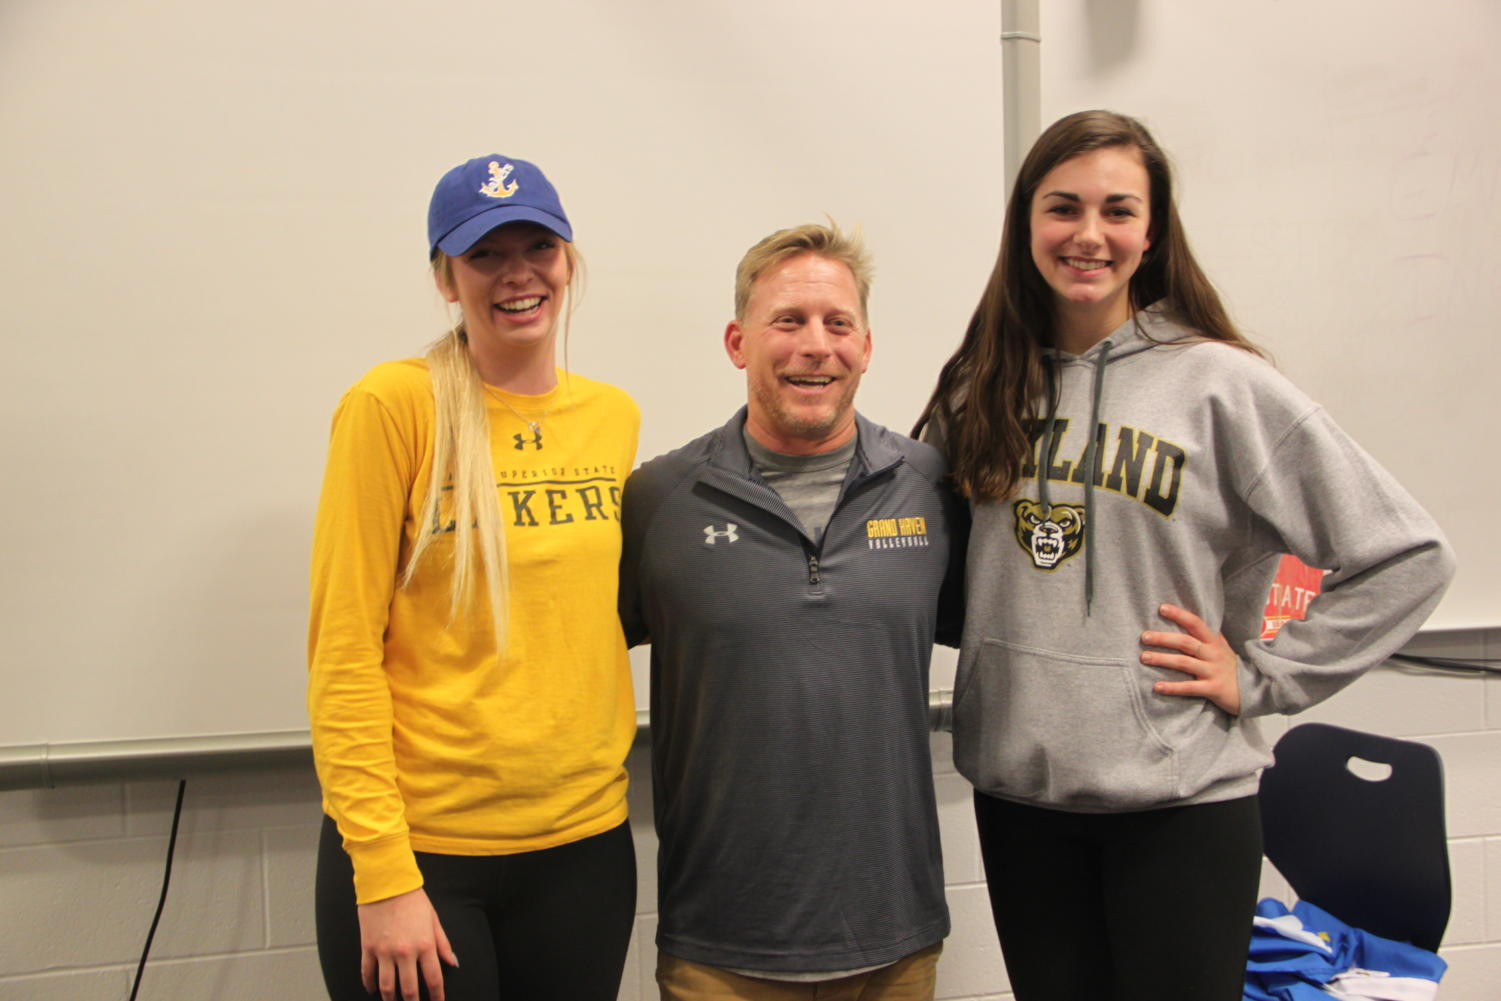 Seniors Avery Strohmeyer and Avolyn Lepo pose with their coach Aaron Smaka on signing day. Strohmeyer is headed to Lake Superior State University, while Lepo signed for Oakland University.